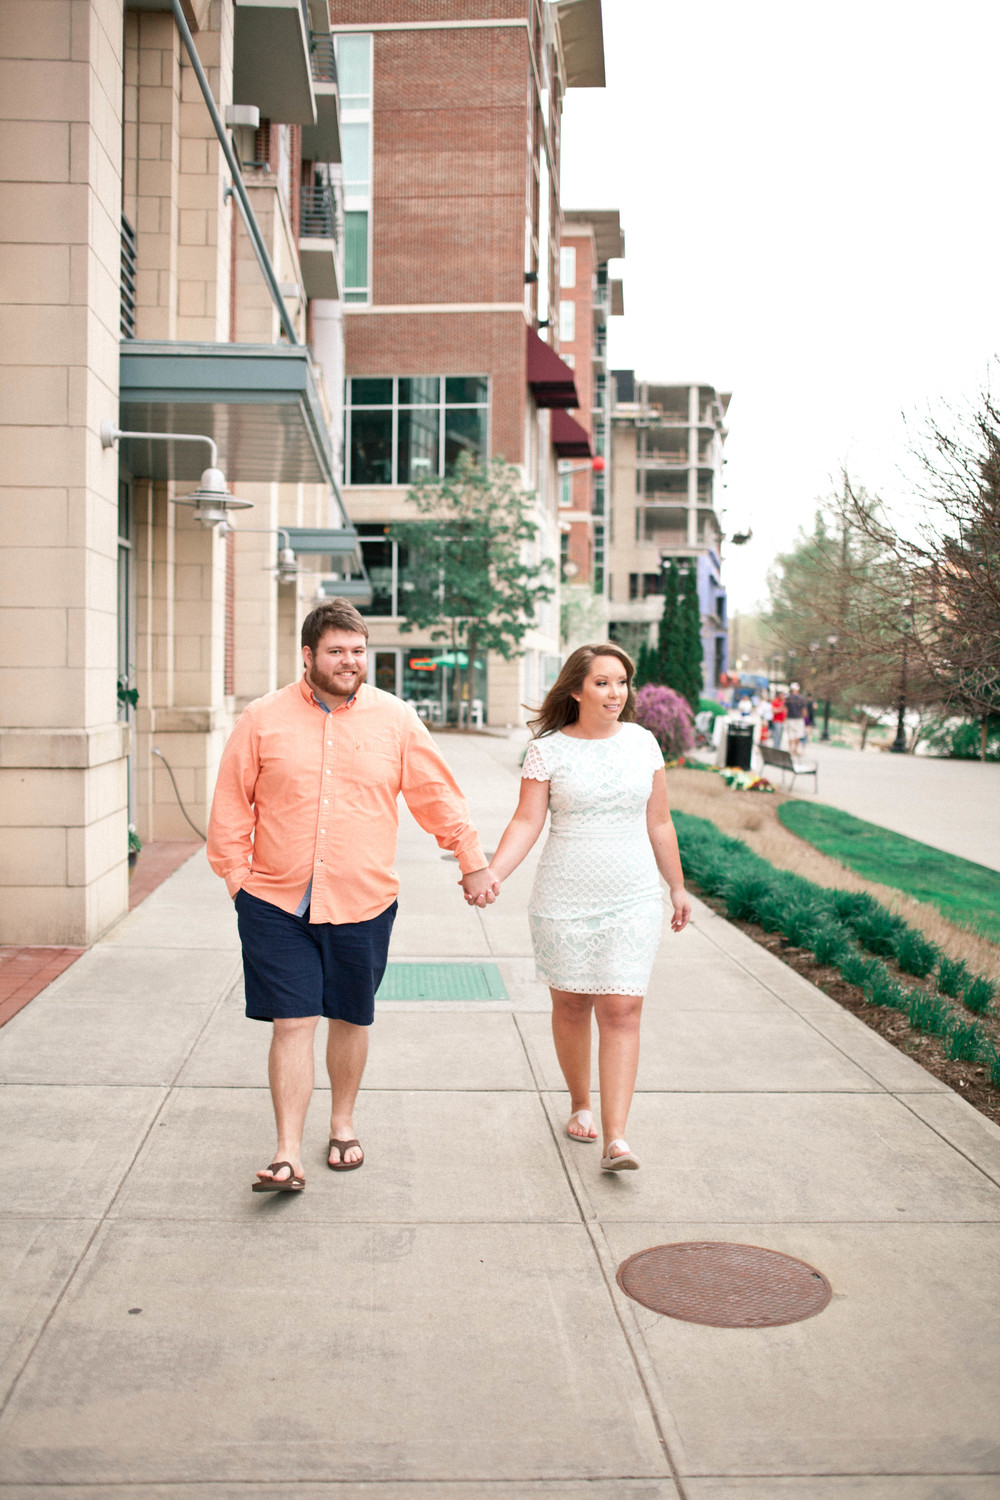 zach_gabbie_engagement_poured_out_photography-16.jpg